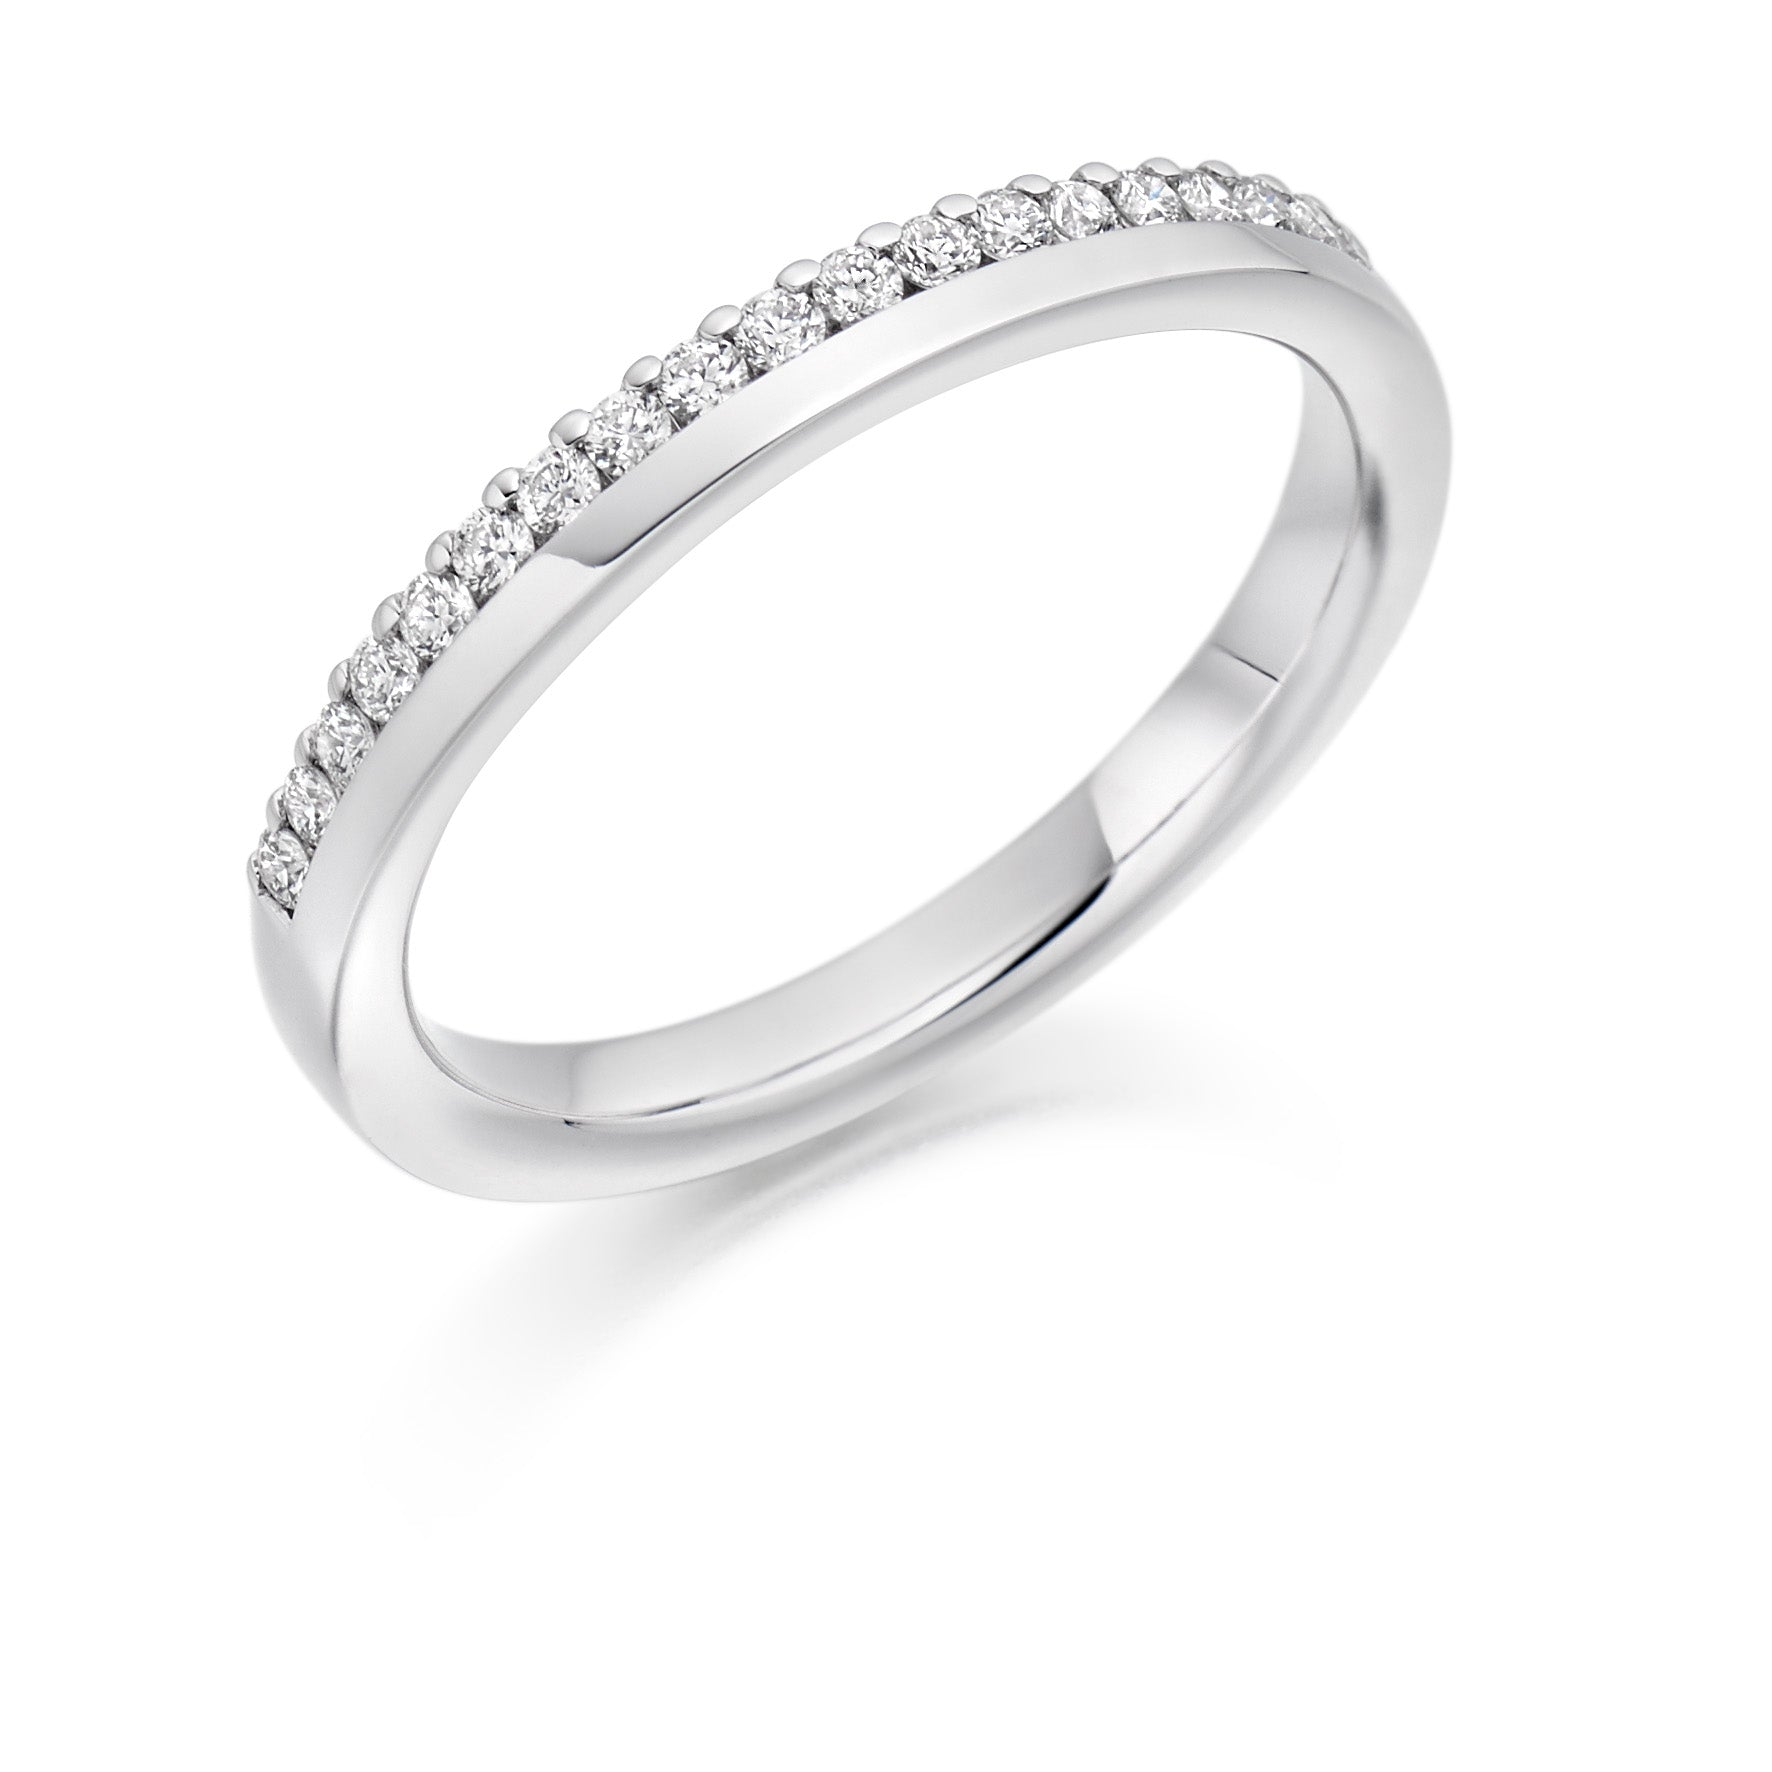 18ct White Gold 0.22ct Round Brilliant Cut Diamonds Offset Vintage Wedding Ring